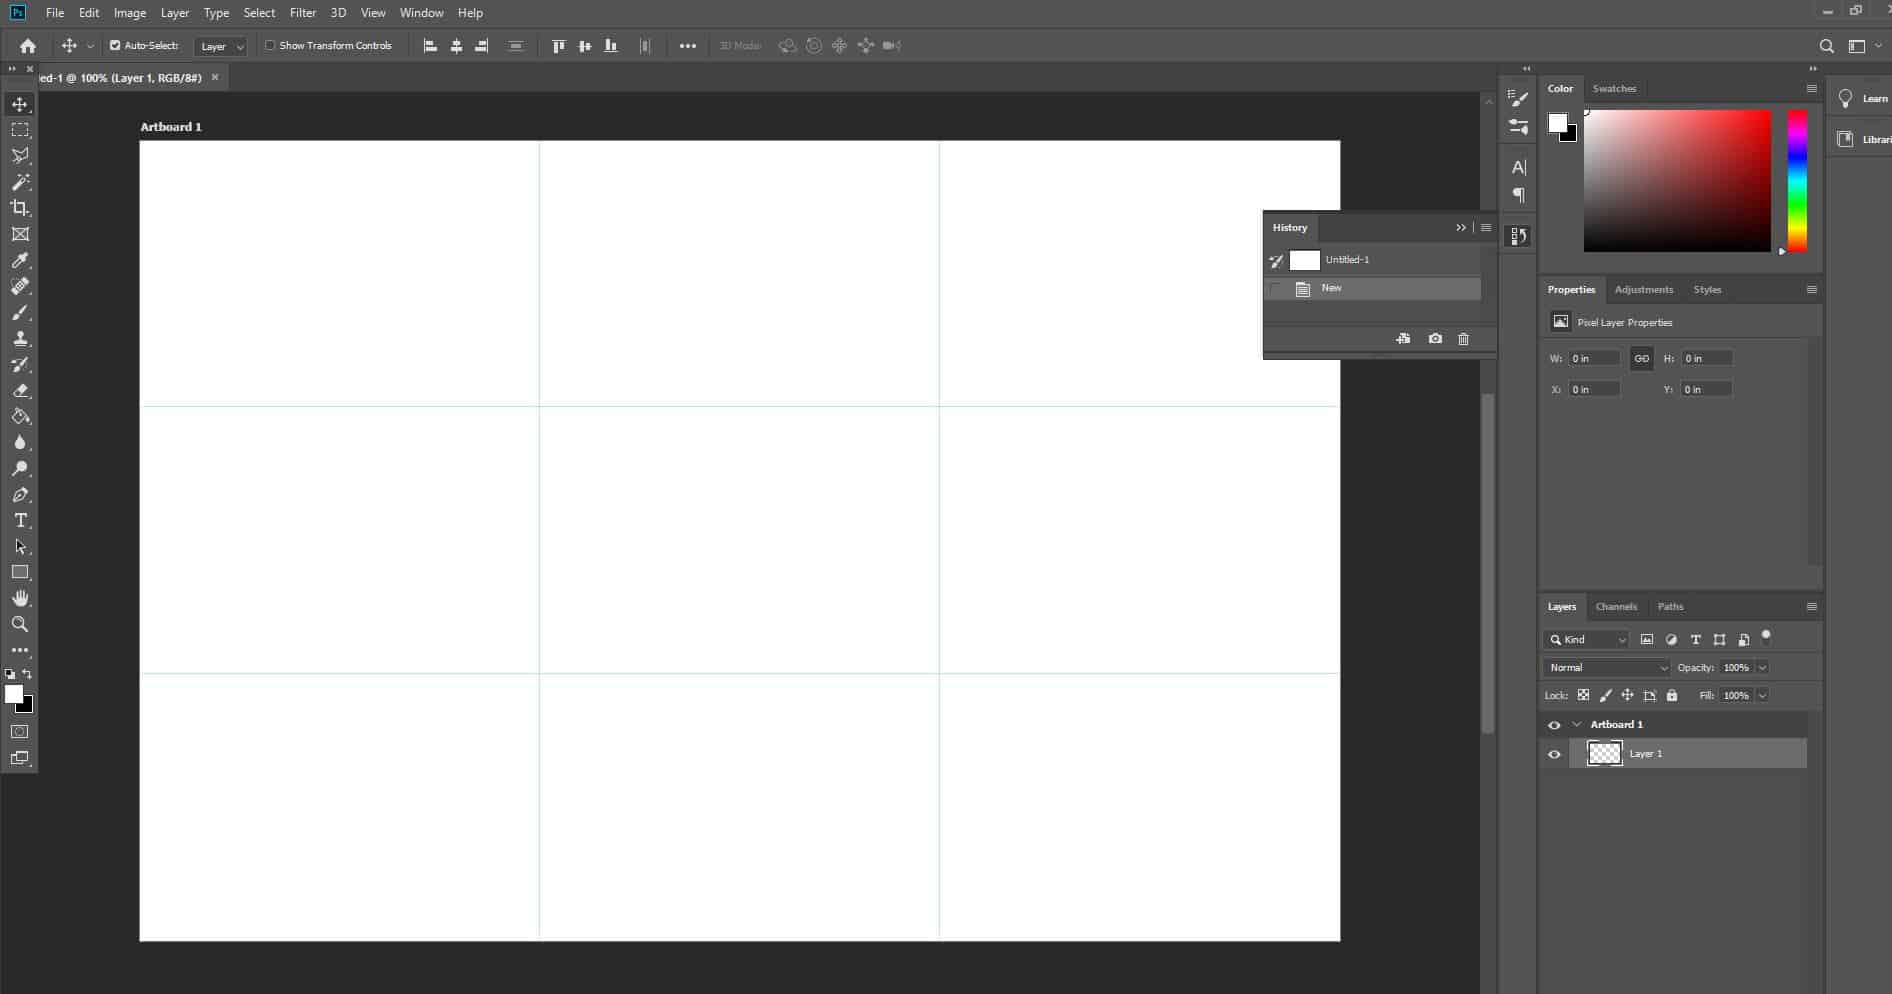 photoshop blank document with rule-of-third grid